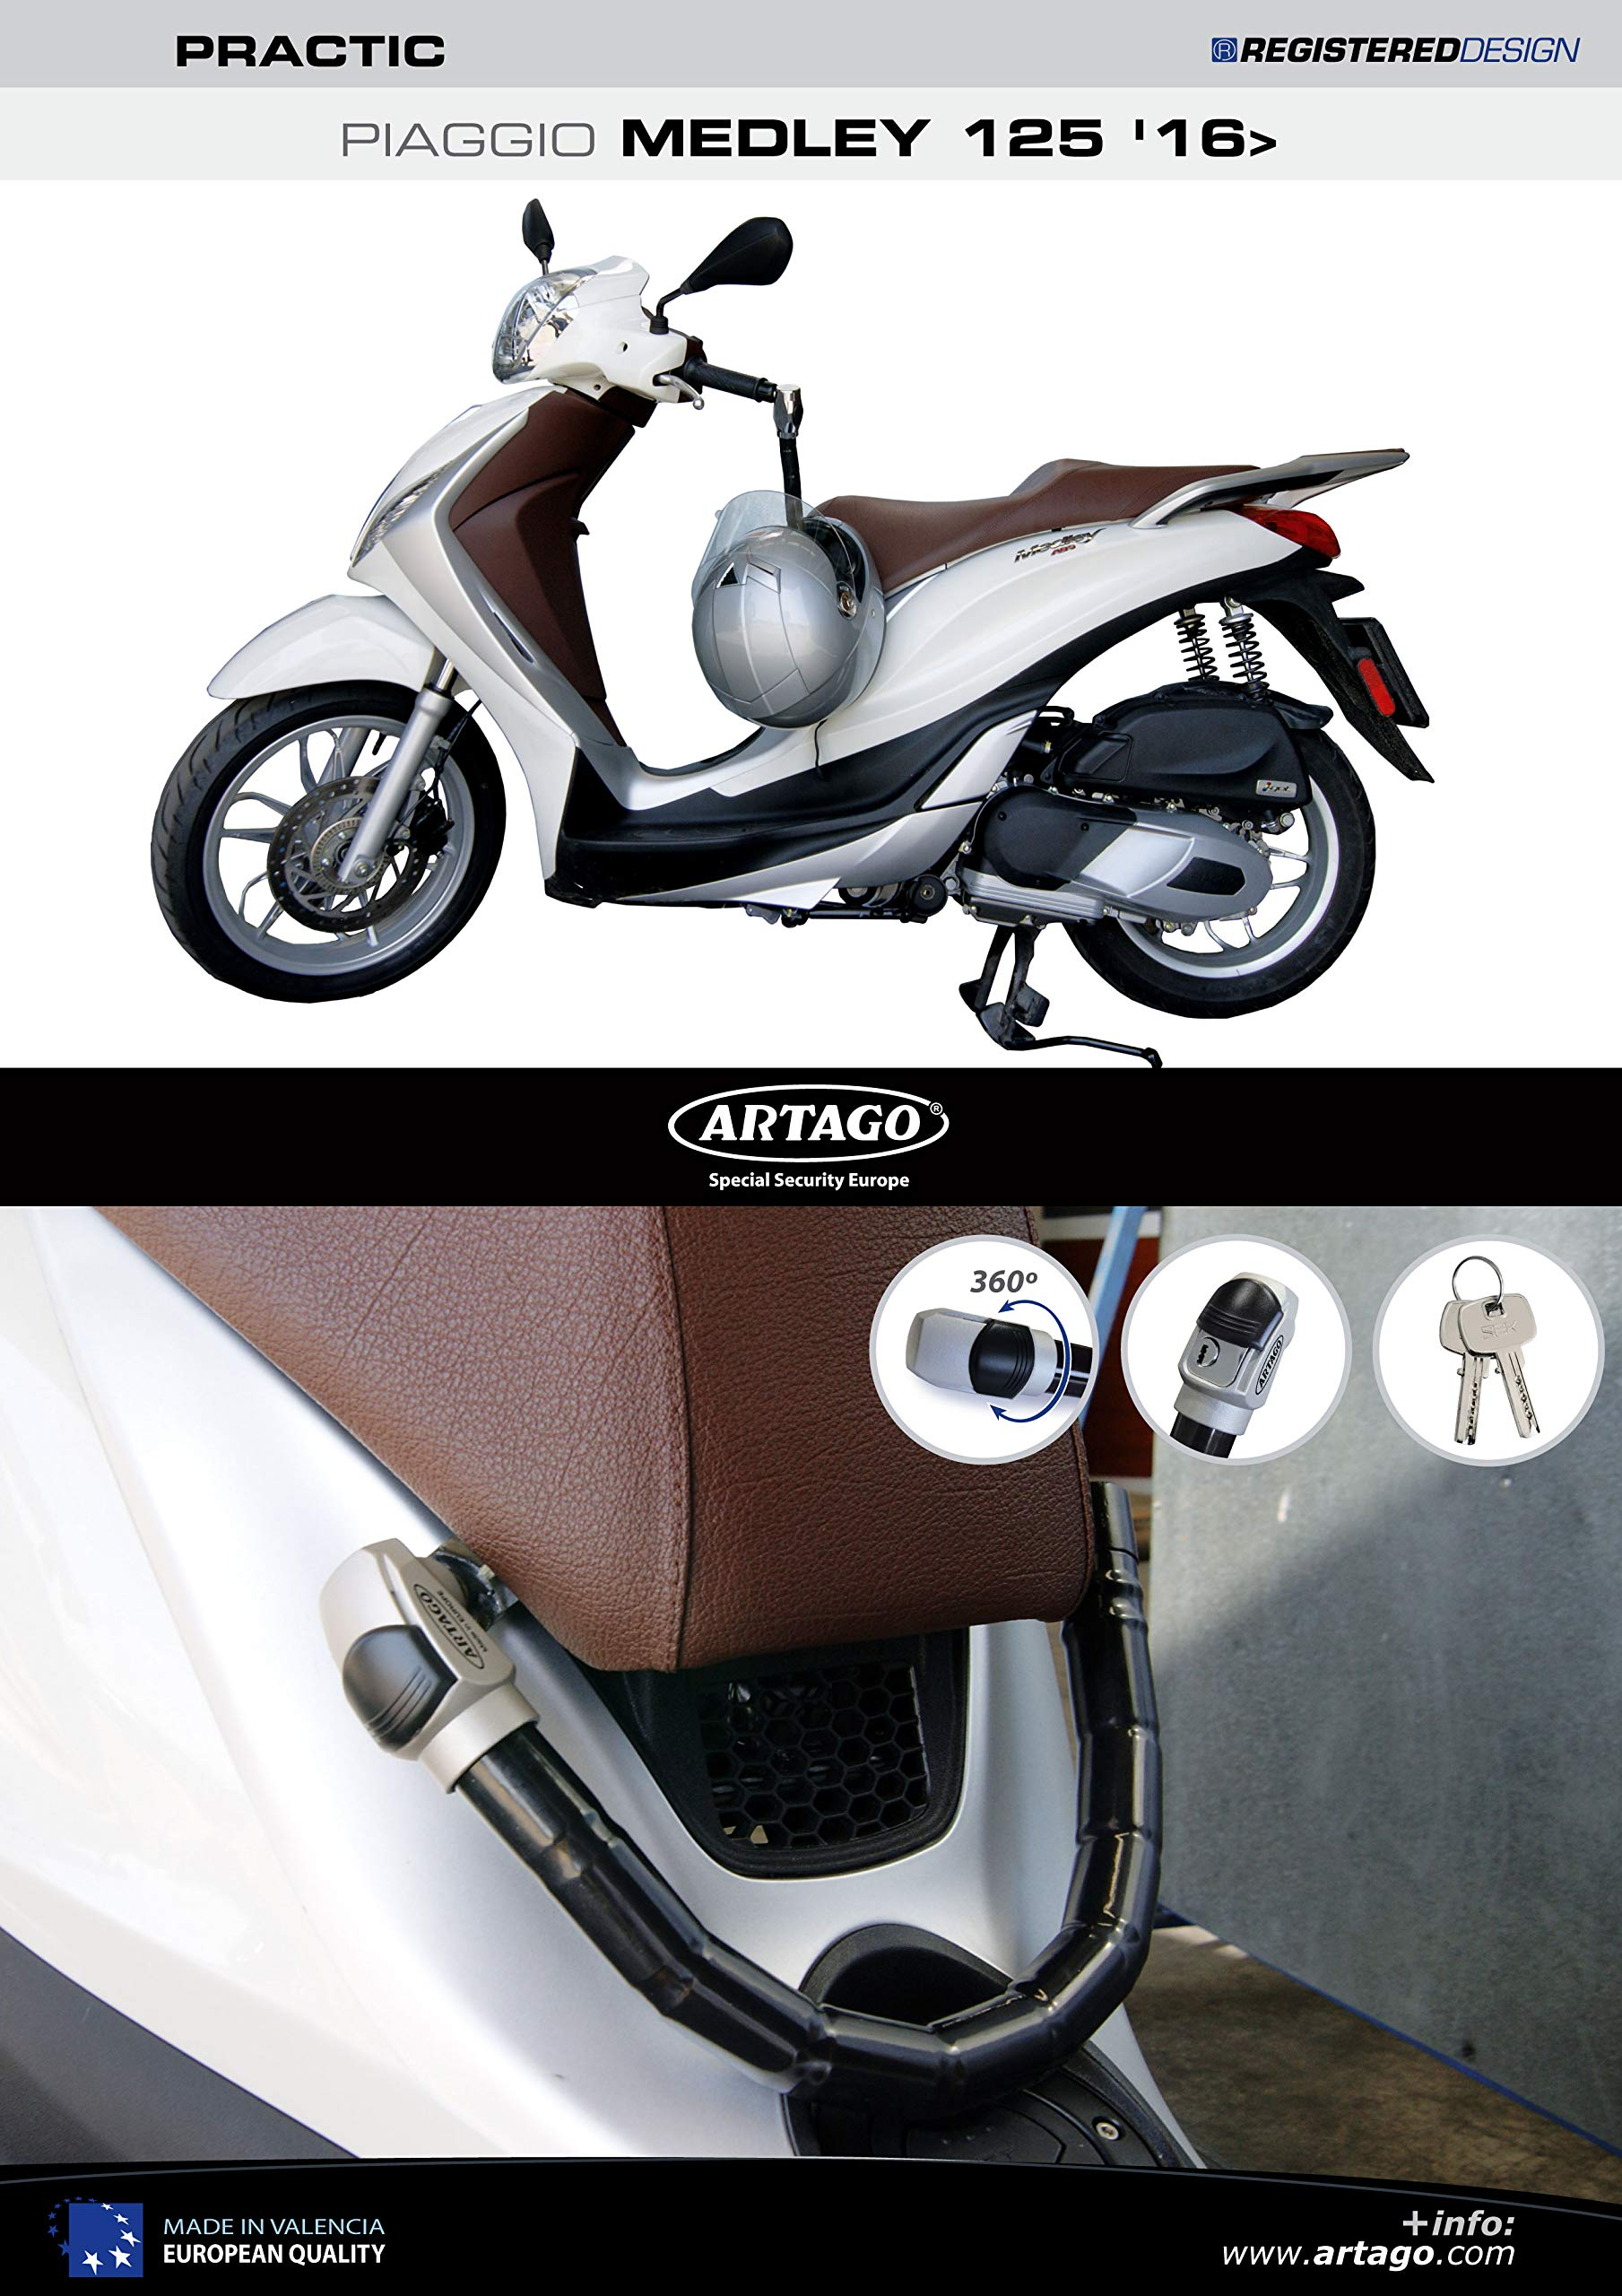 Artago 1638STY Anti-Theft Practic Style Handlebar Lock with Holder for Piaggio Medley 125